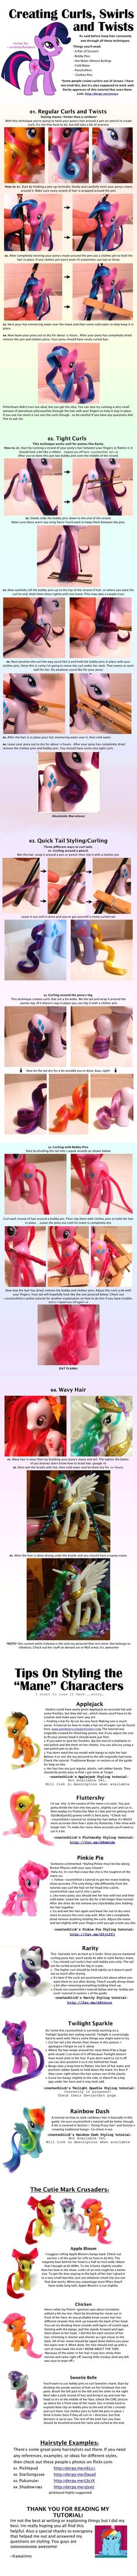 Kawaiimo's Pony Hair Styling Guide 2/2 by ~kawaiimo